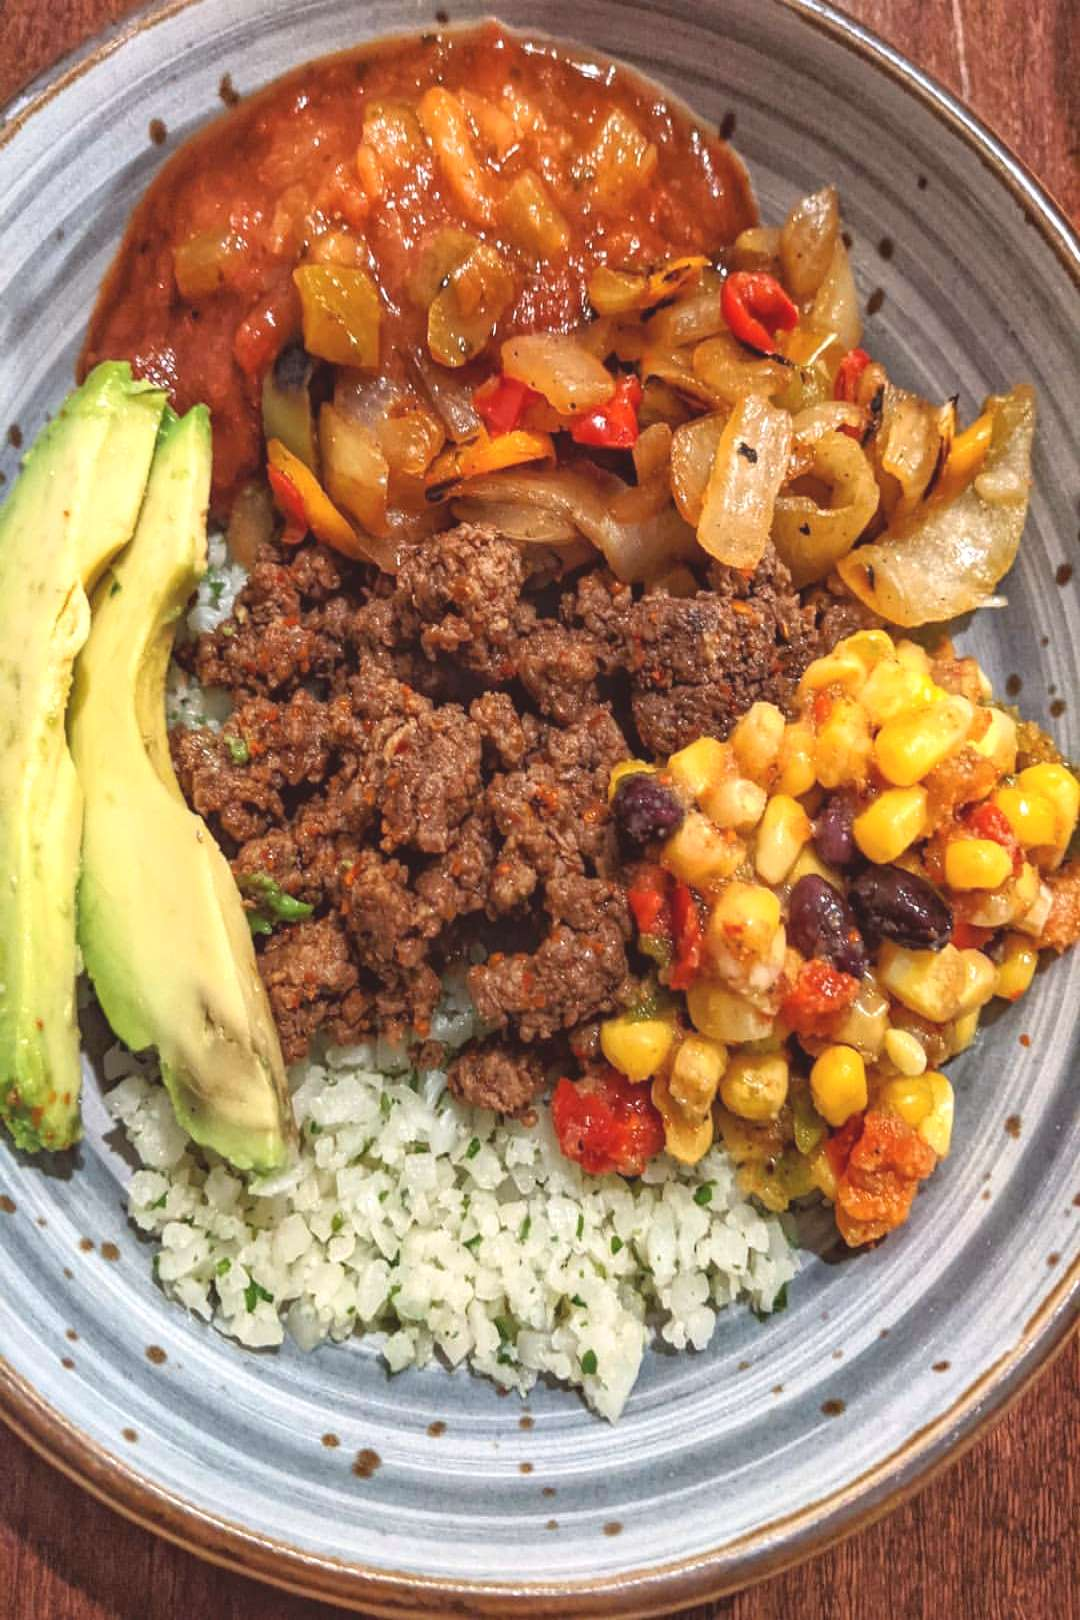 DIY Burrito Bowls . Delicious amp Quick Meal with simple Ingredient